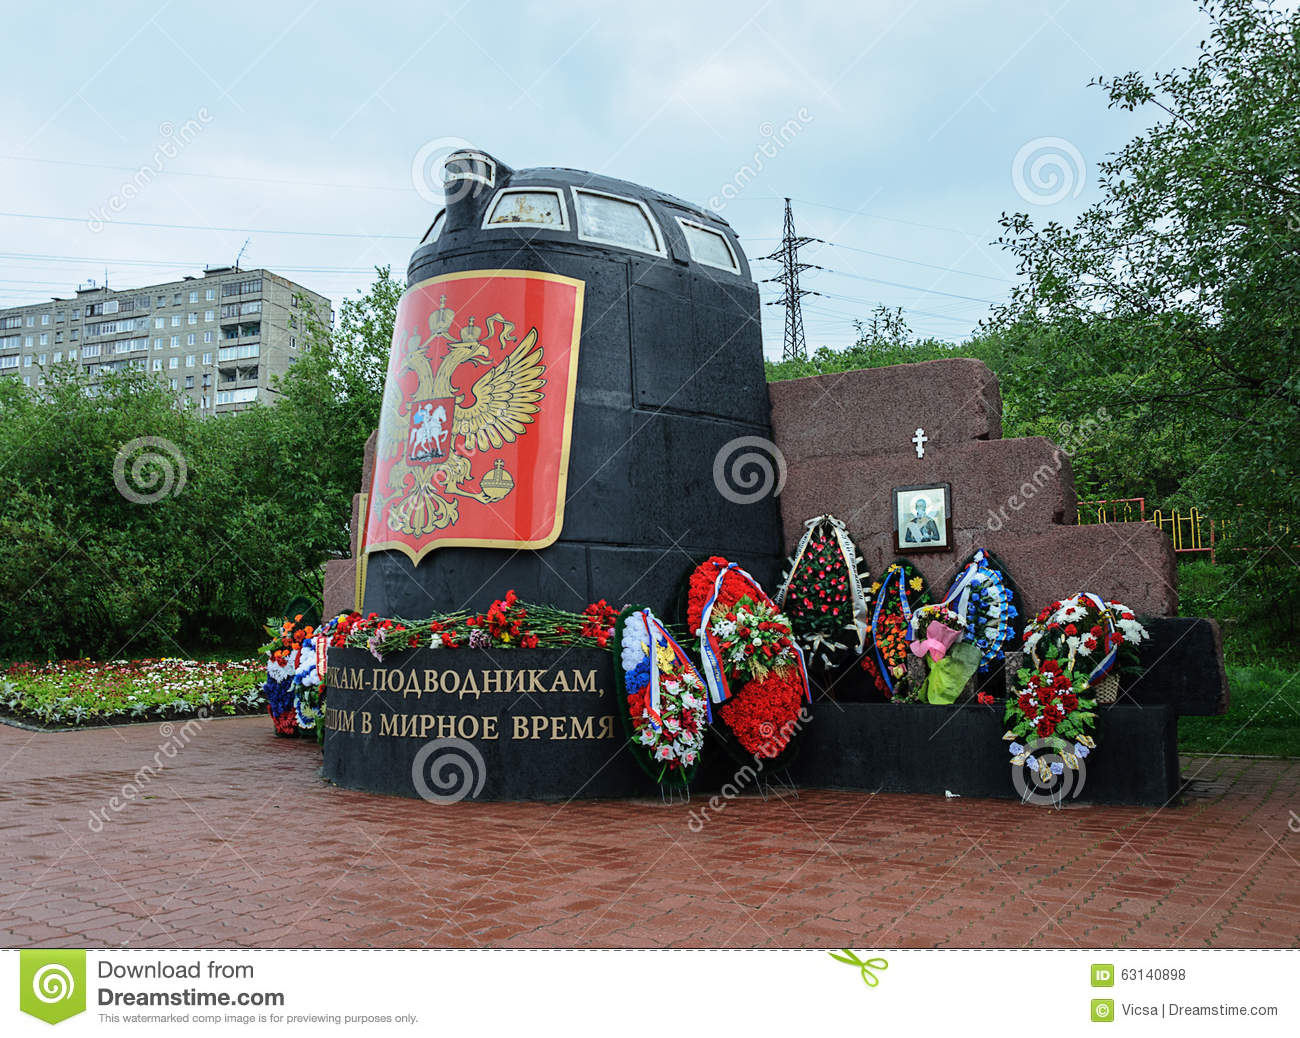 Monument To The Dead Submariners In Murmansk Editorial Stock Photo - Image: 63140898